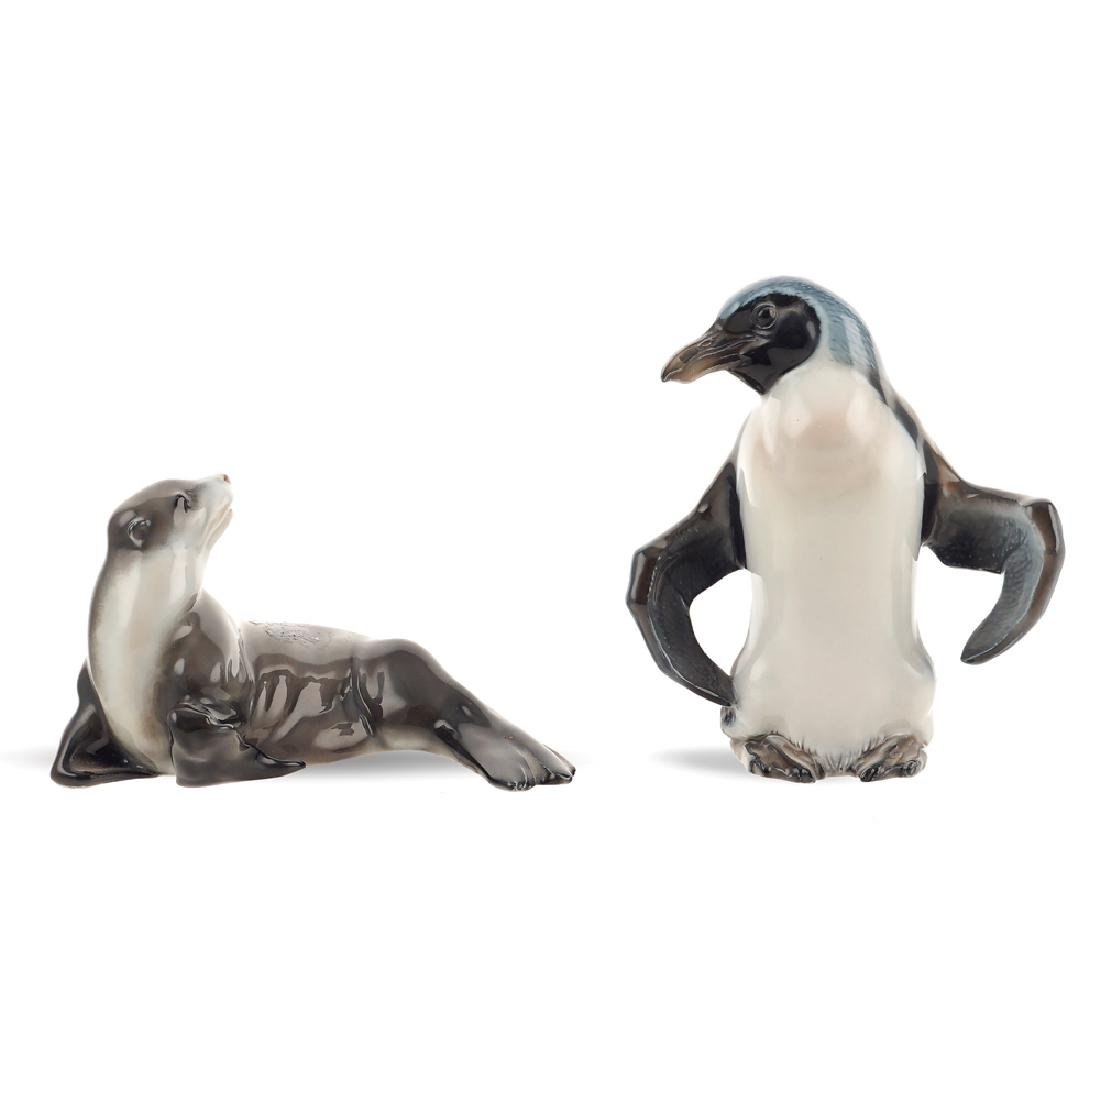 A pair of porcelain animals 20th century